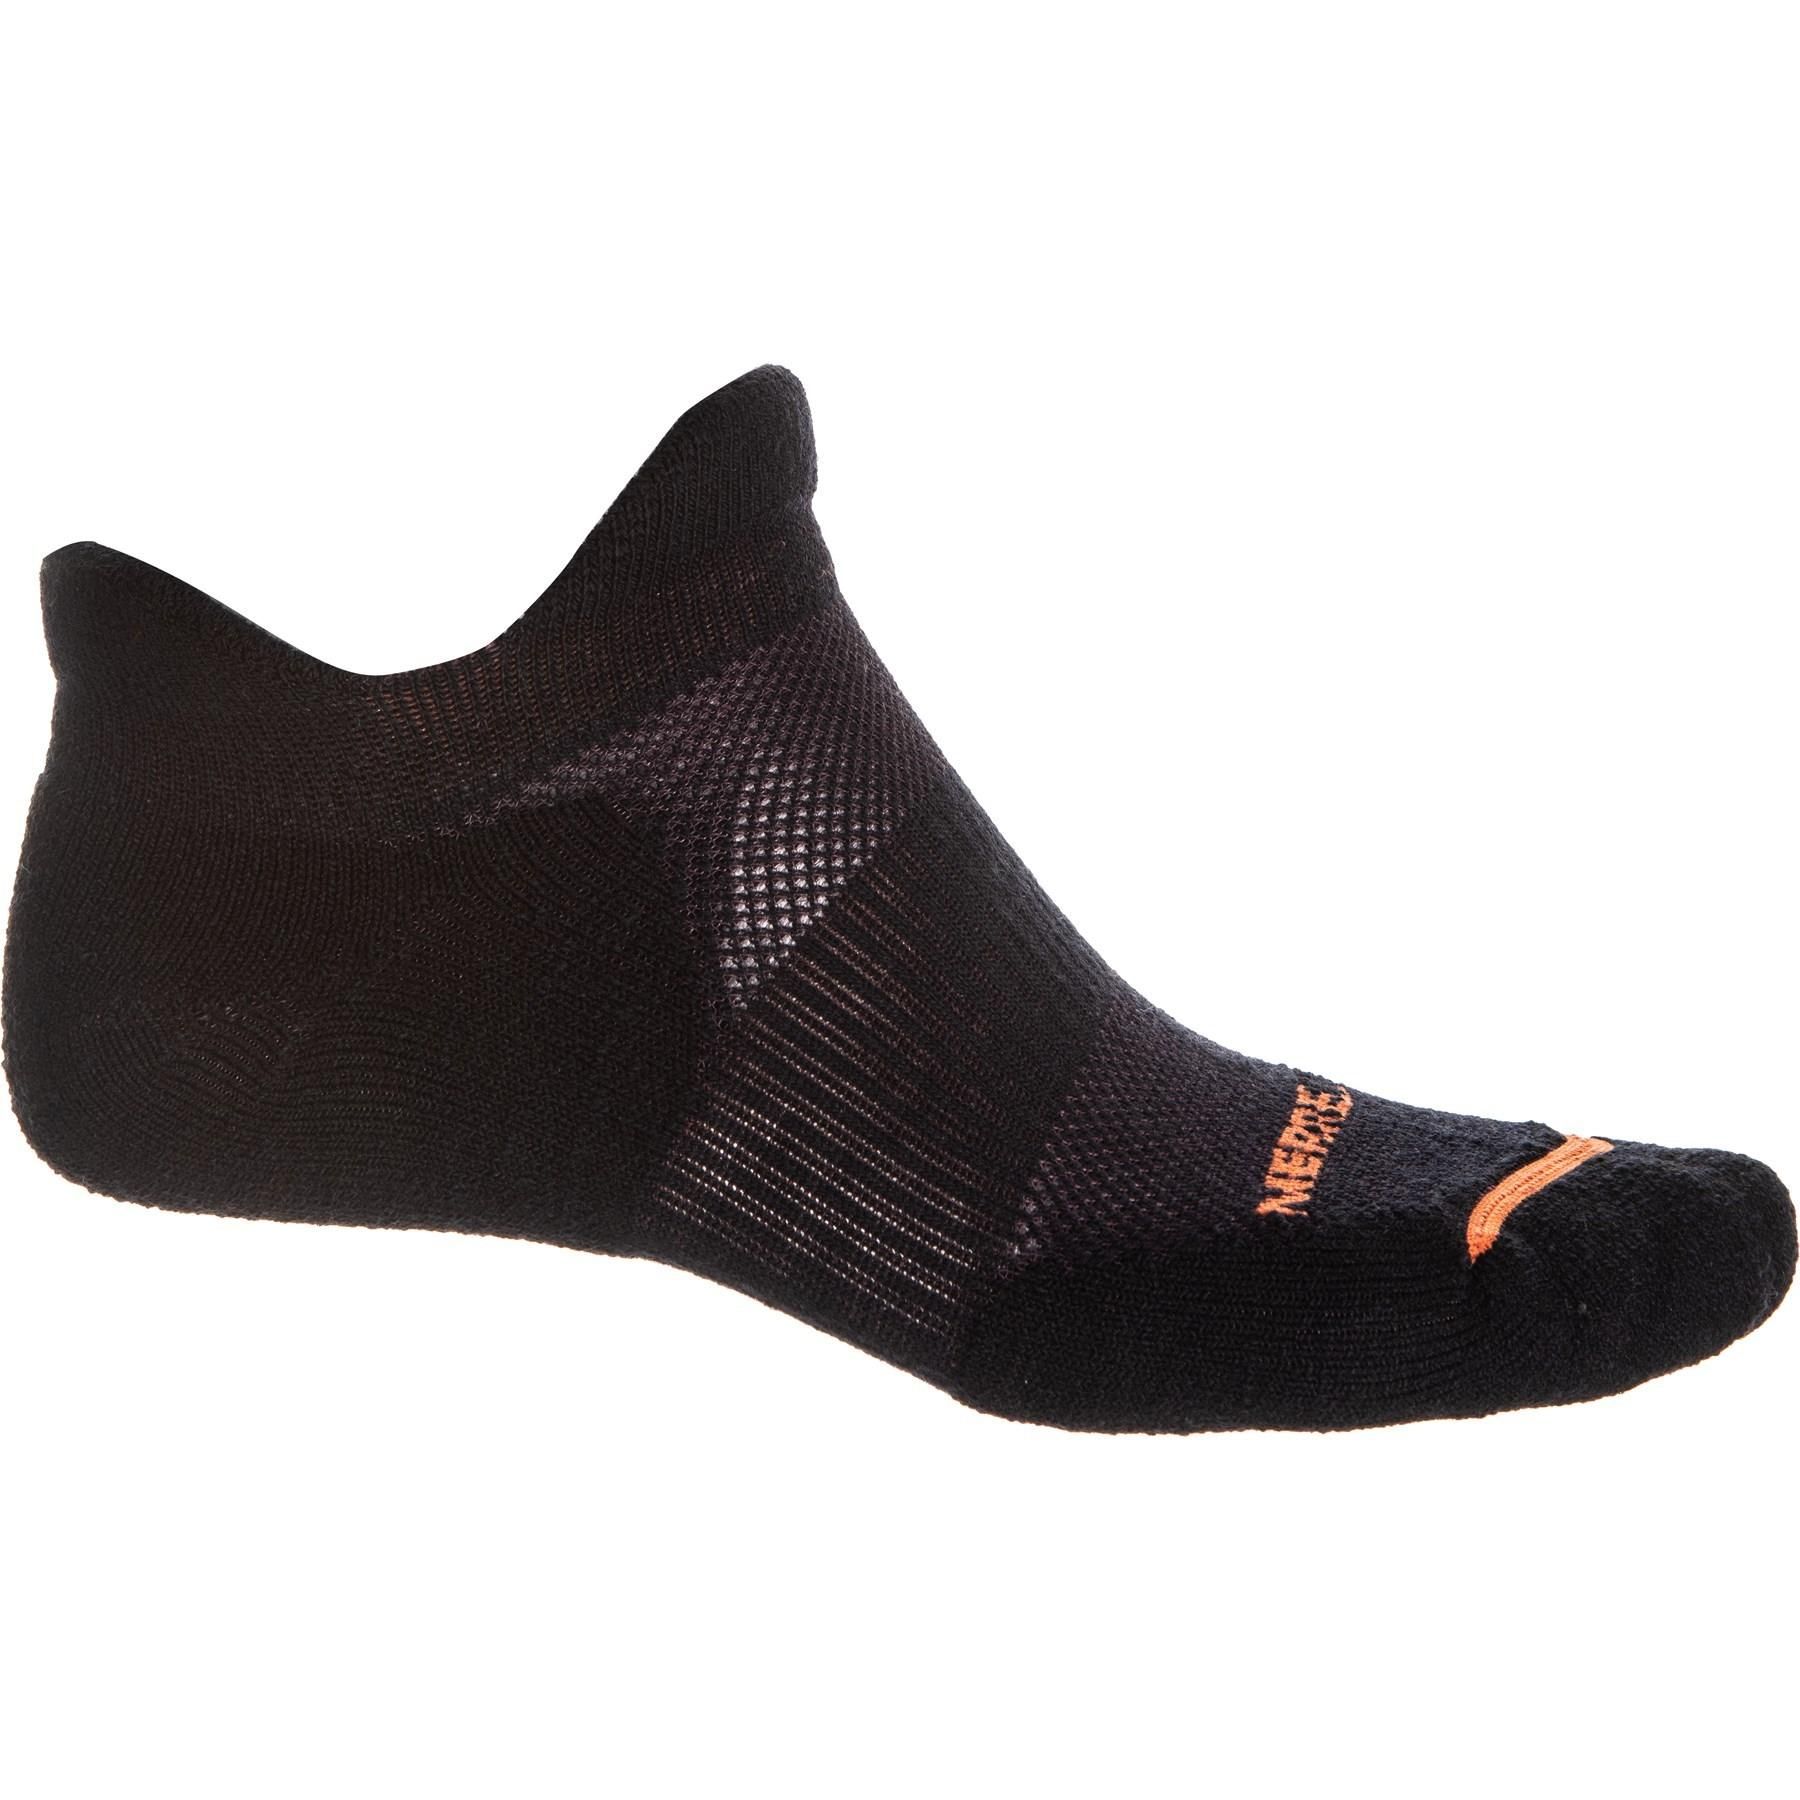 74fcf68e6f Lyst - Merrell Dual Tab Trail Runner Socks in Black for Men